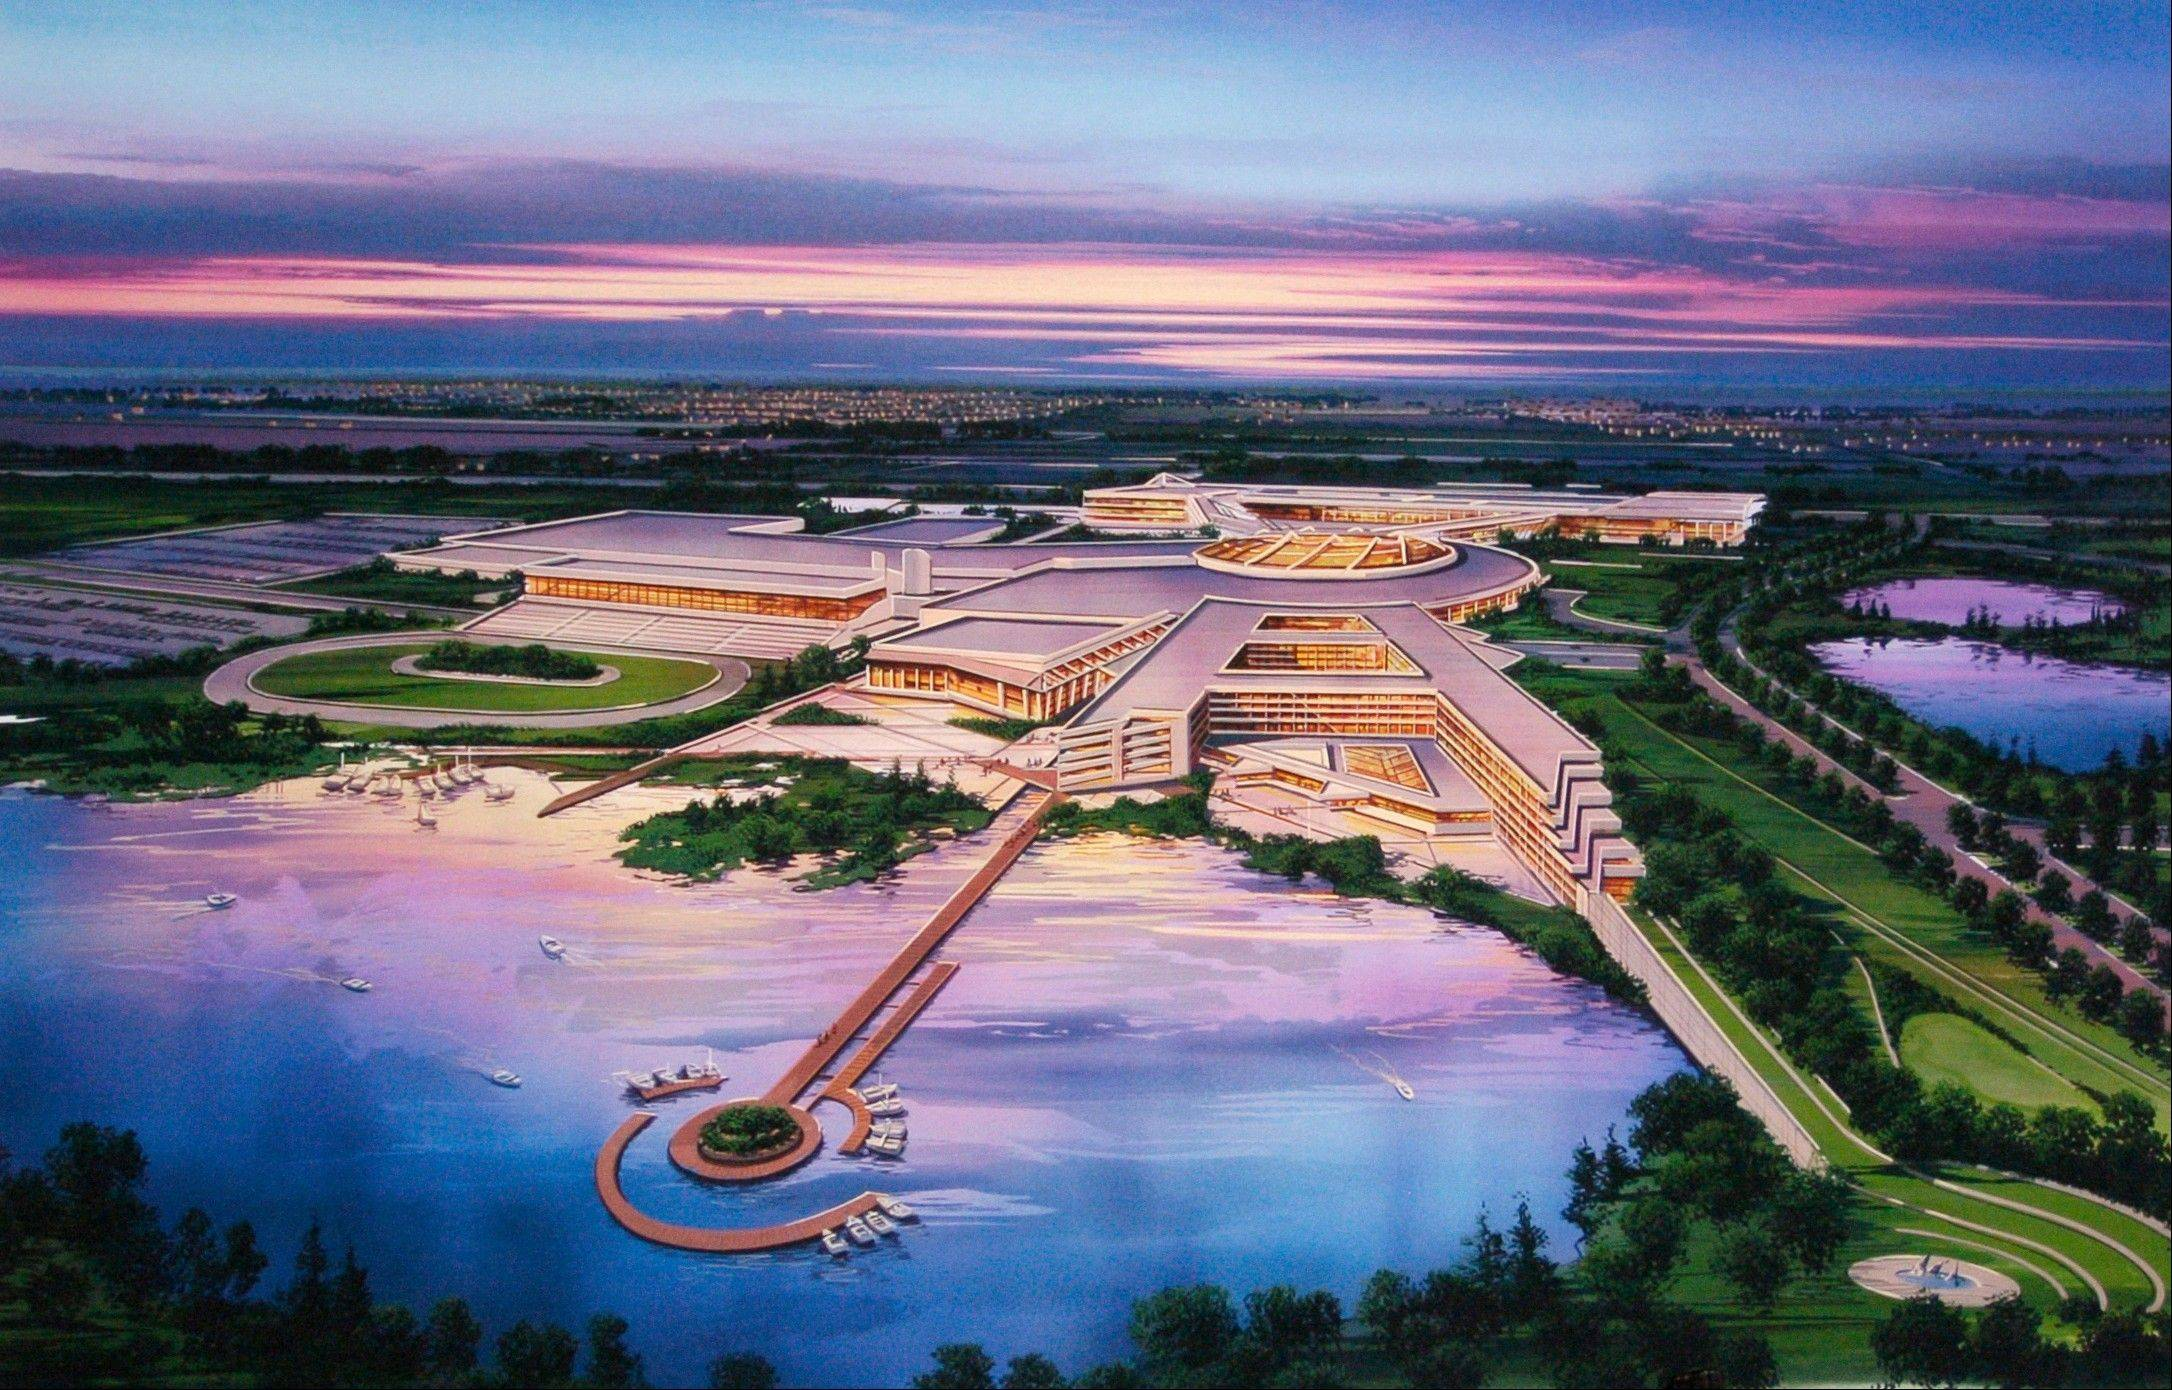 This is an artist's rendering of the Menominee Nation's proposed casino at the site of the former Dairyland Greyhound Dog Track in Kenosha, Wis.